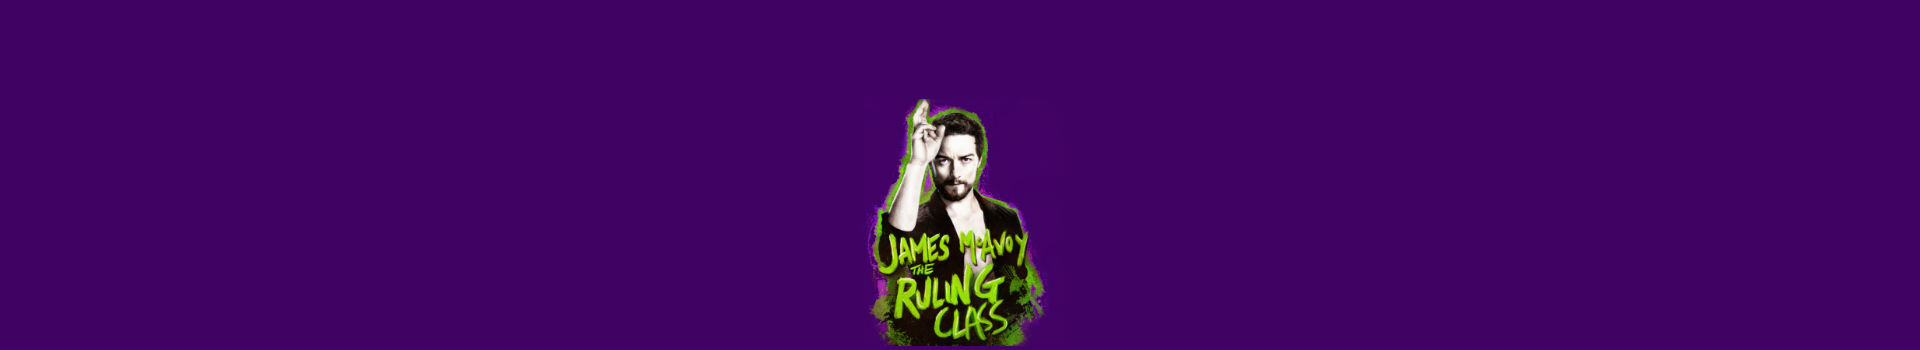 James McAvoy stars in The Ruling Class